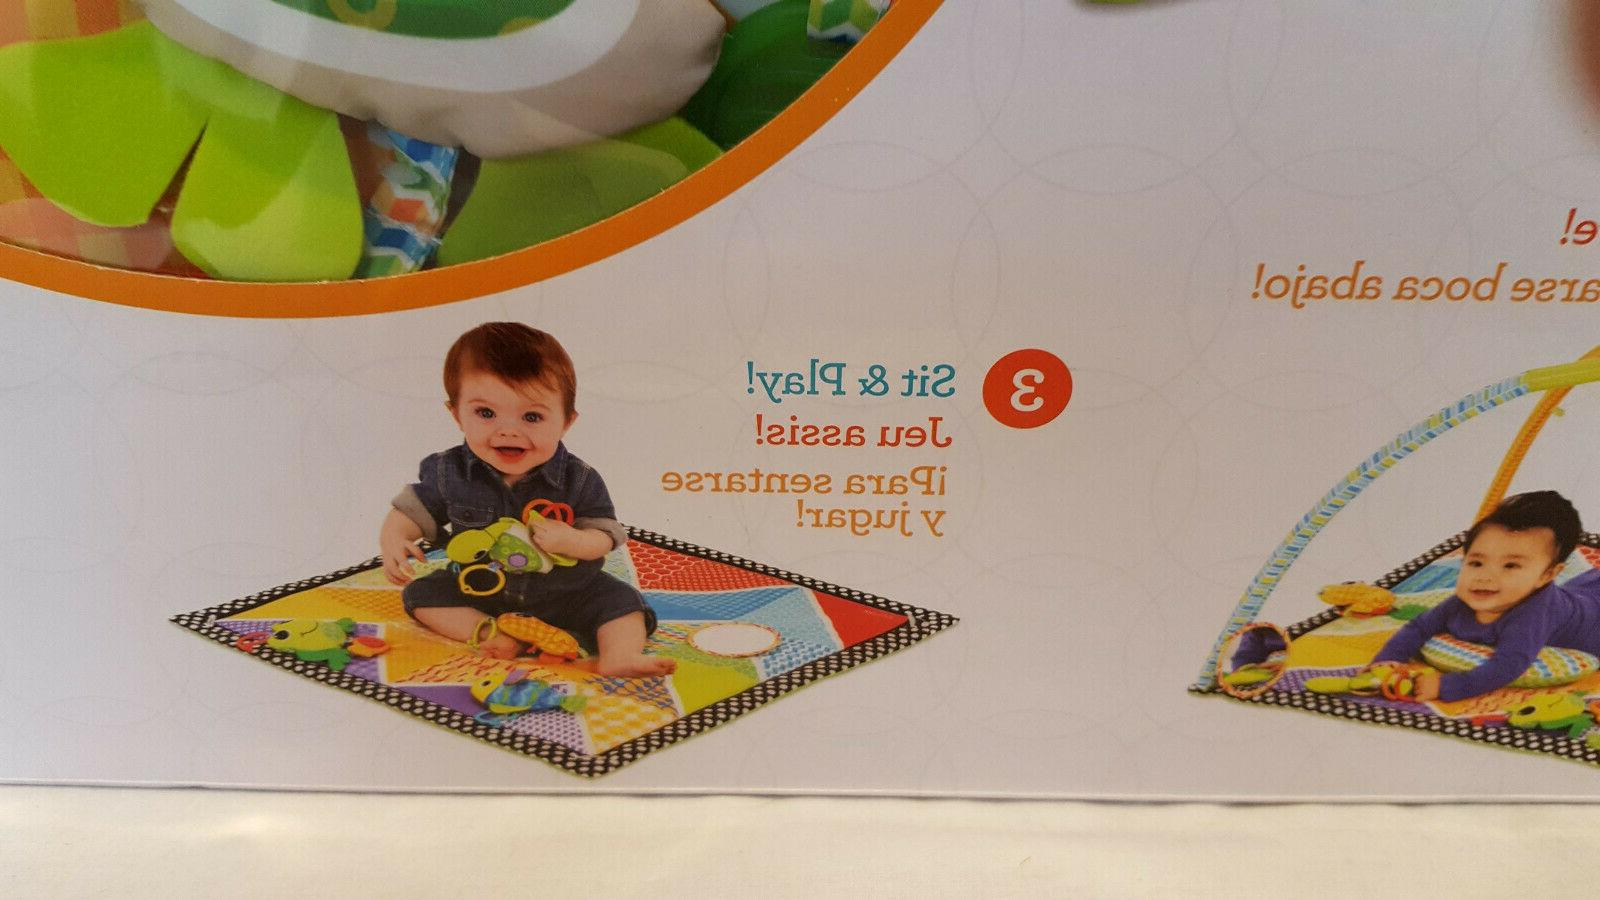 Infantino Activity Gym Play Mat Pals Easy Twist and Fold